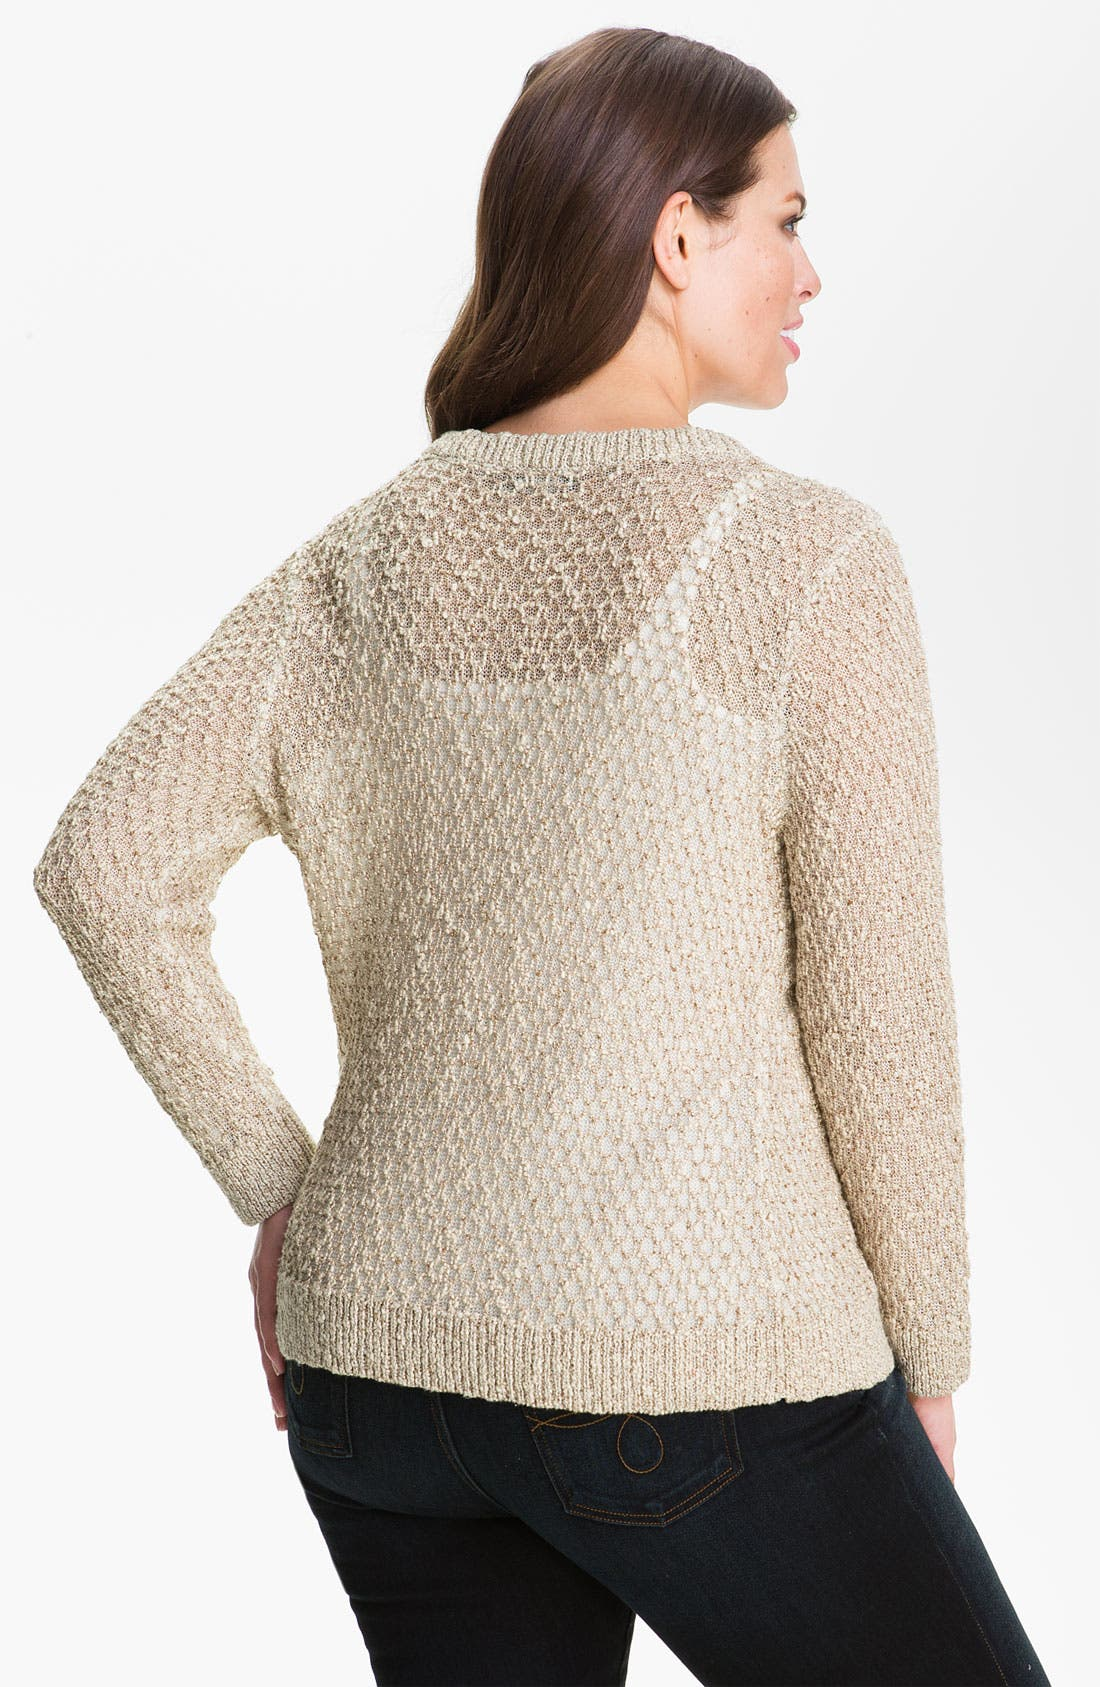 Nic + Zoe 'Shimmer' Cardigan,                             Alternate thumbnail 2, color,                             250